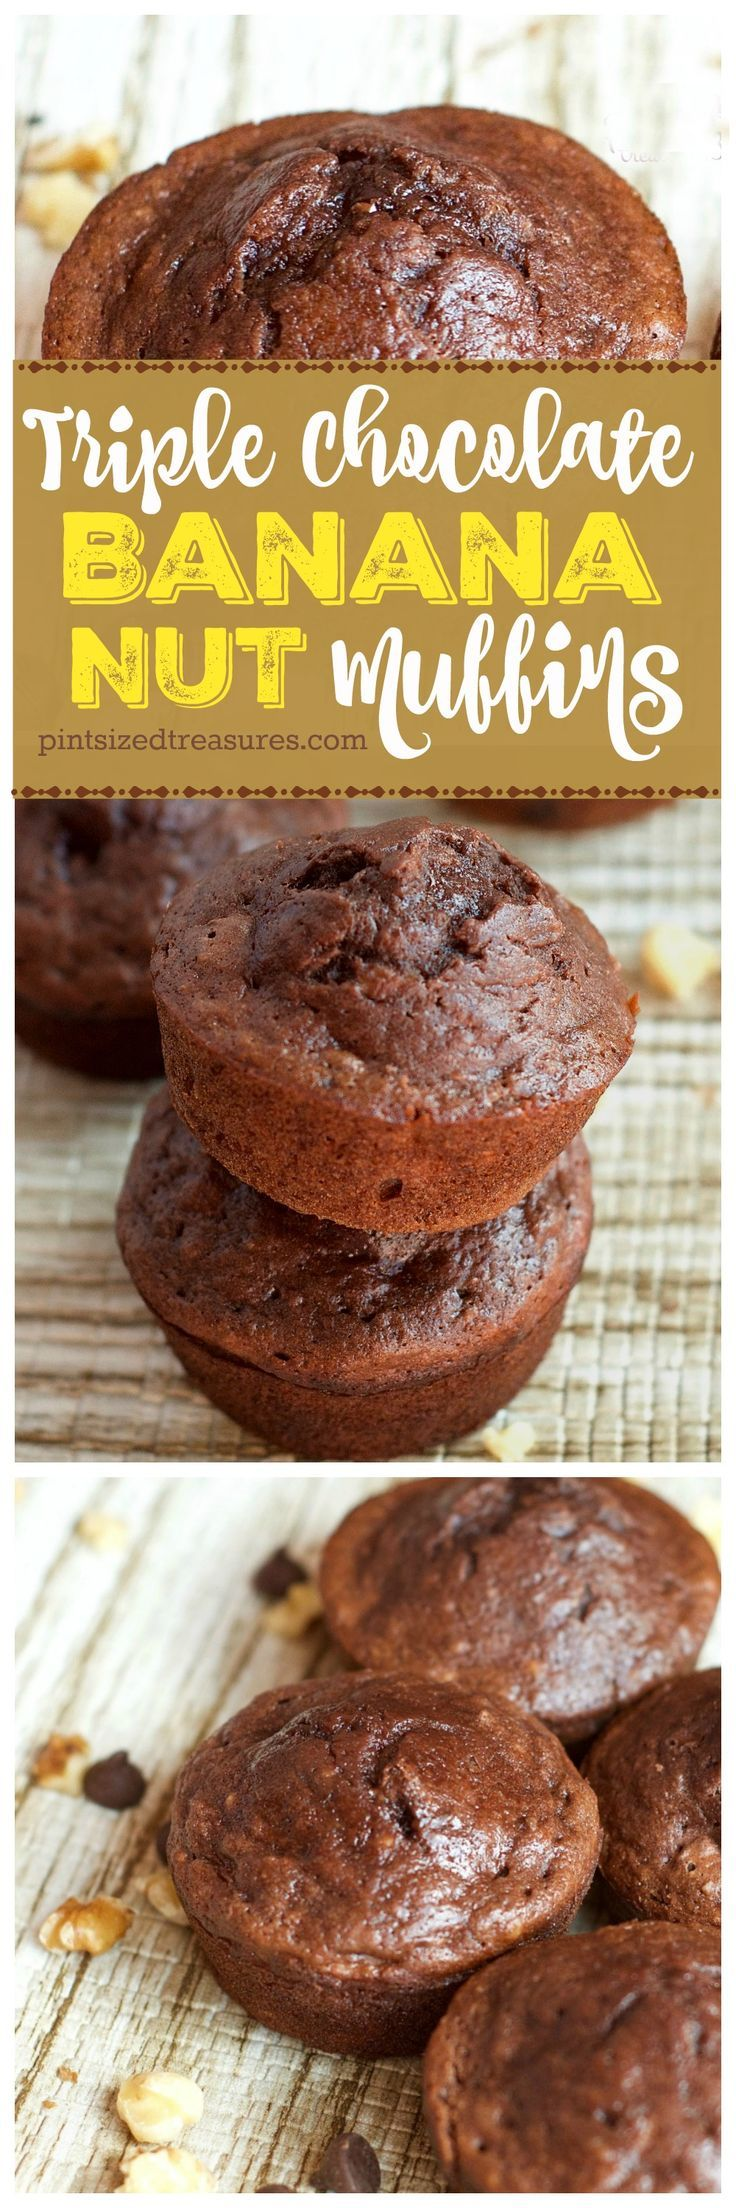 1000+ images about Muffins and Loaves on Pinterest | Chocolate muffins ...